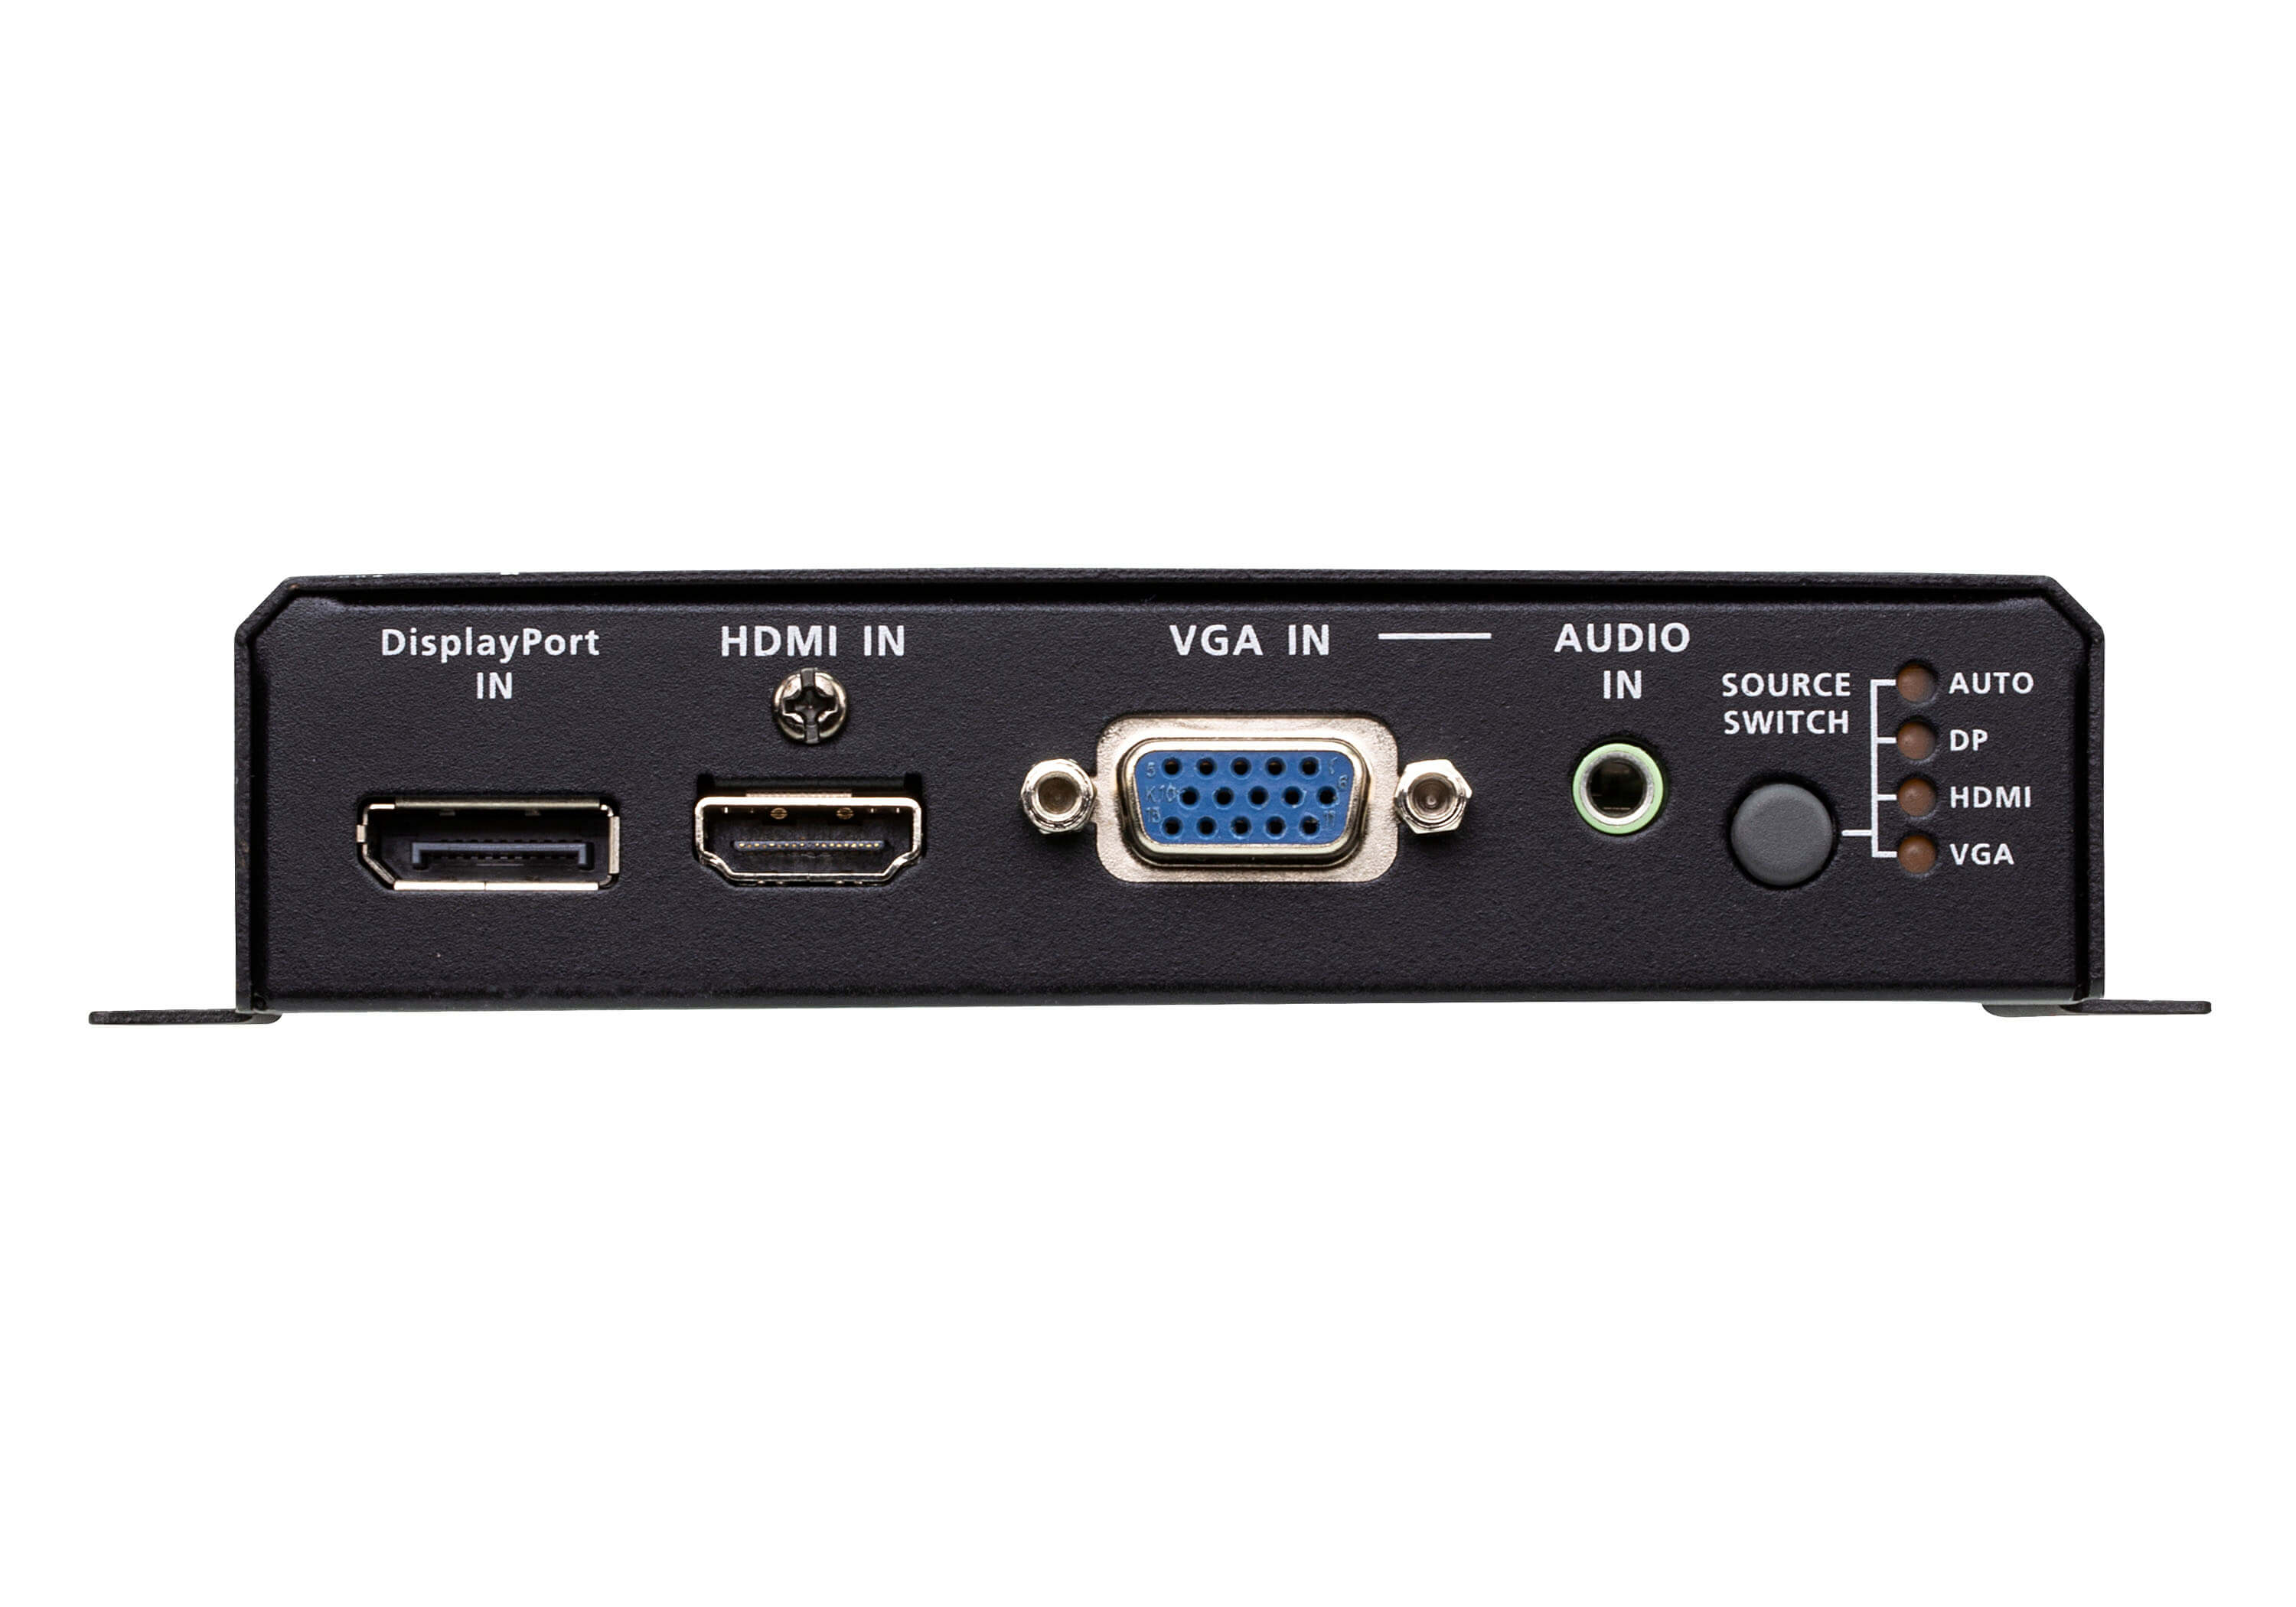 Switch DisplayPort / HDMI / VGA com Transmissor HDBaseT-3